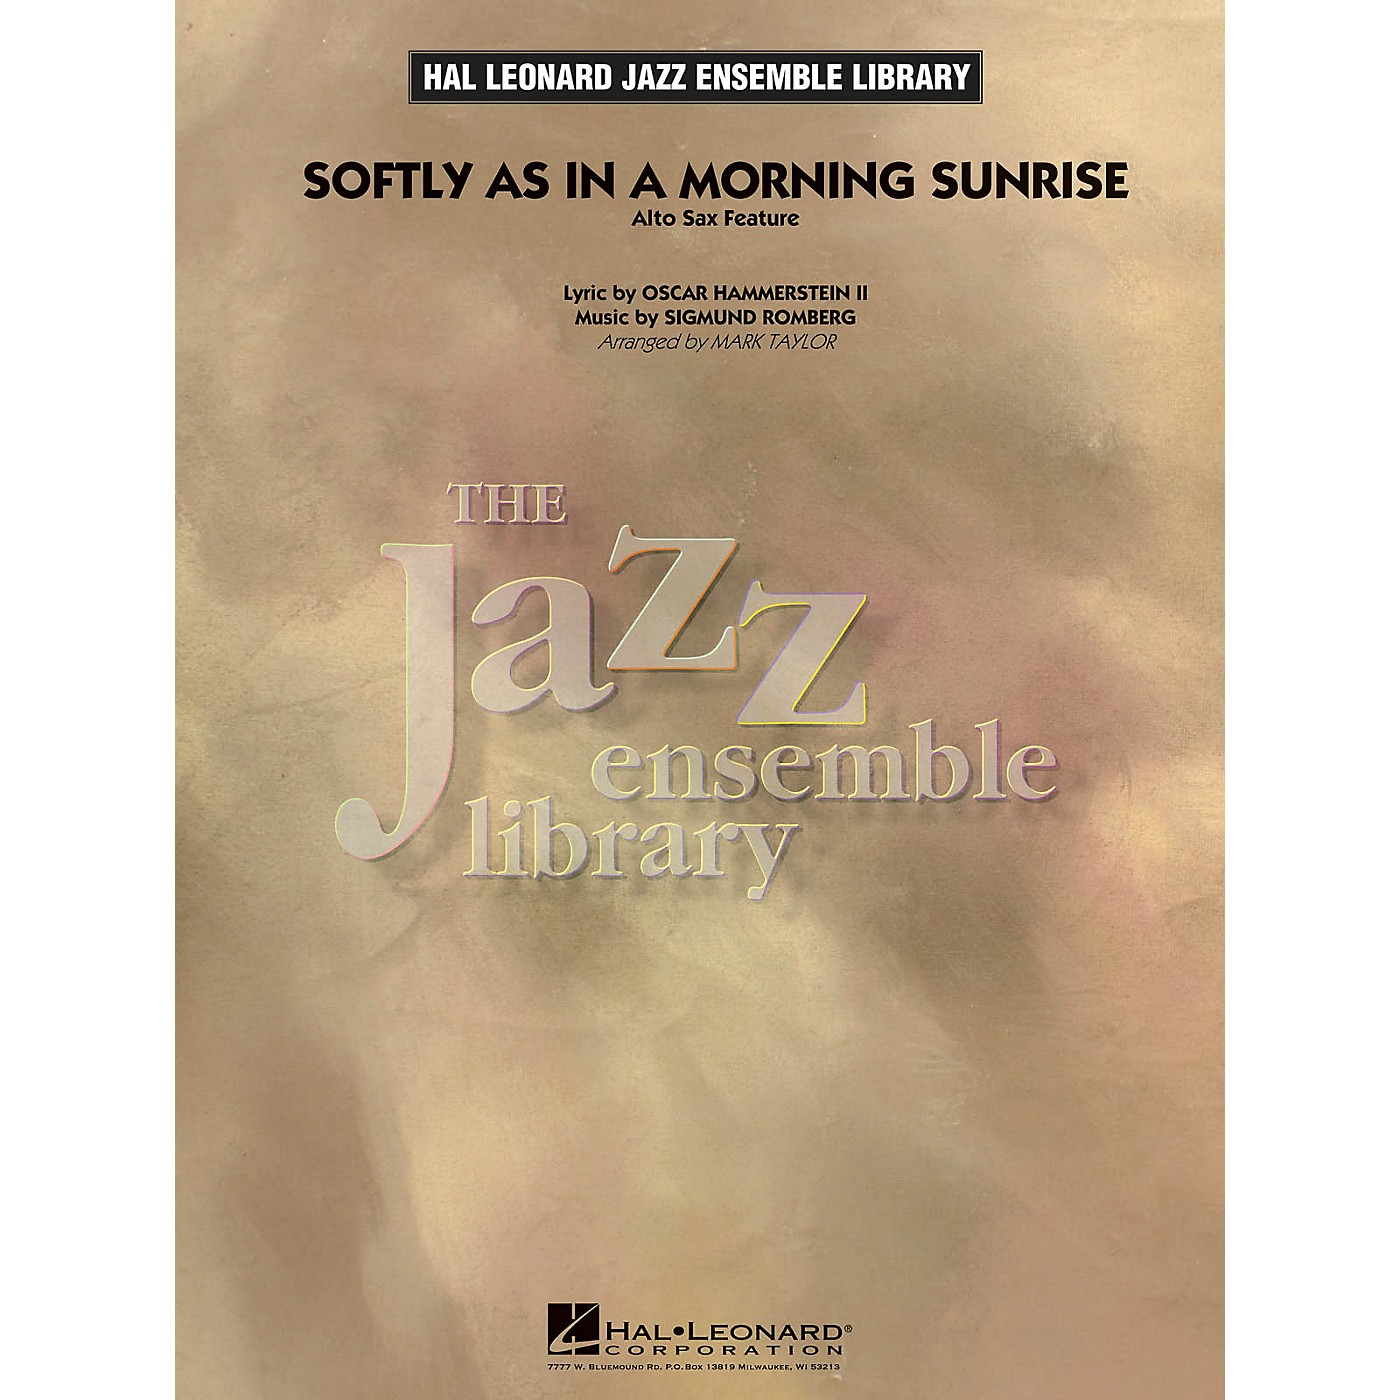 Hal Leonard Softly as in a Morning Sunrise (Solo Alto Sax Feature) Jazz Band Level 4 Arranged by Mark Taylor thumbnail